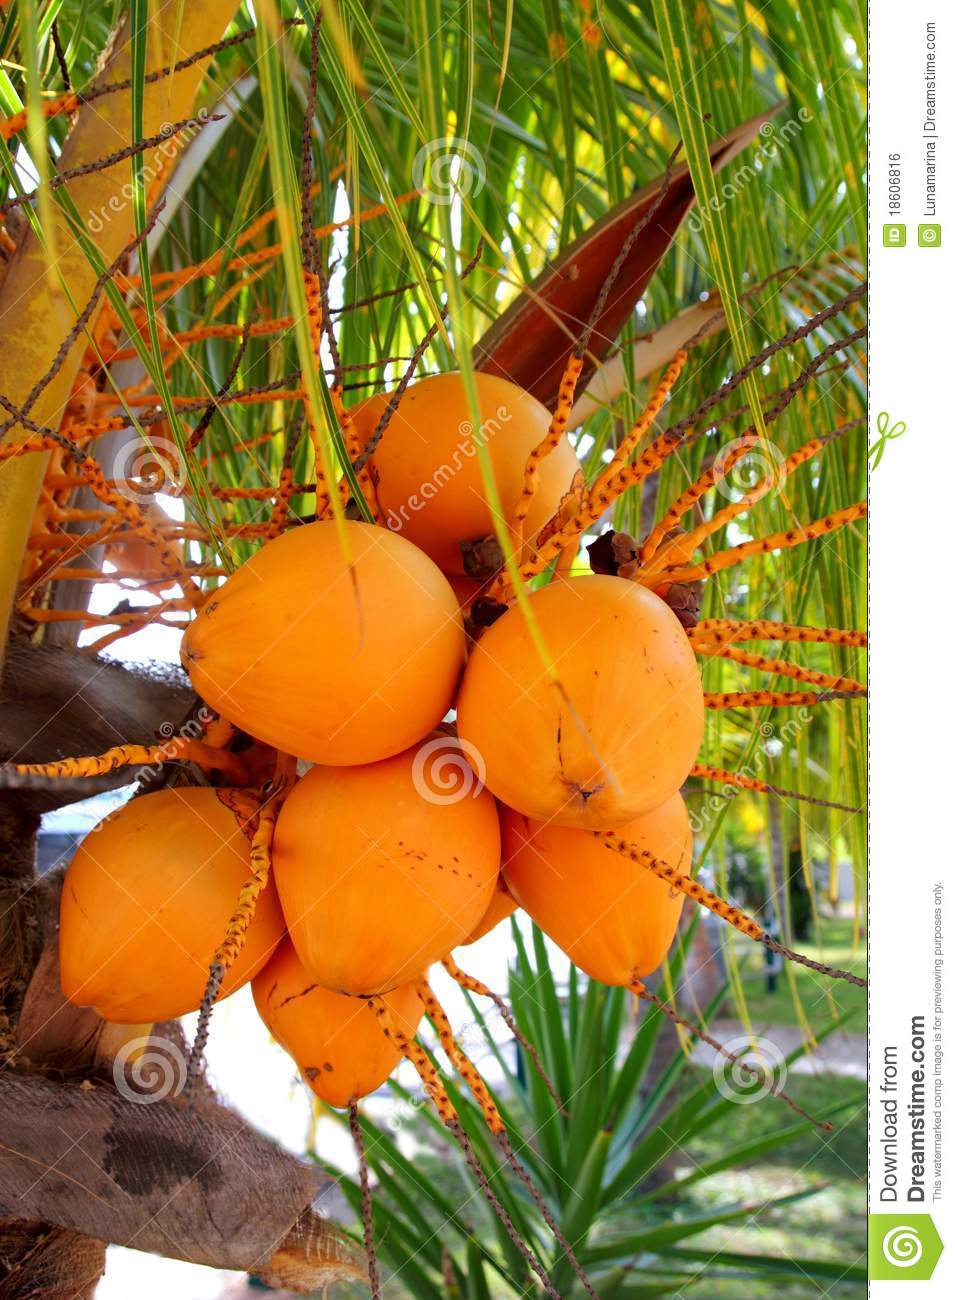 Coconuts in palm tree ripe yellow fruit royalty free stock image